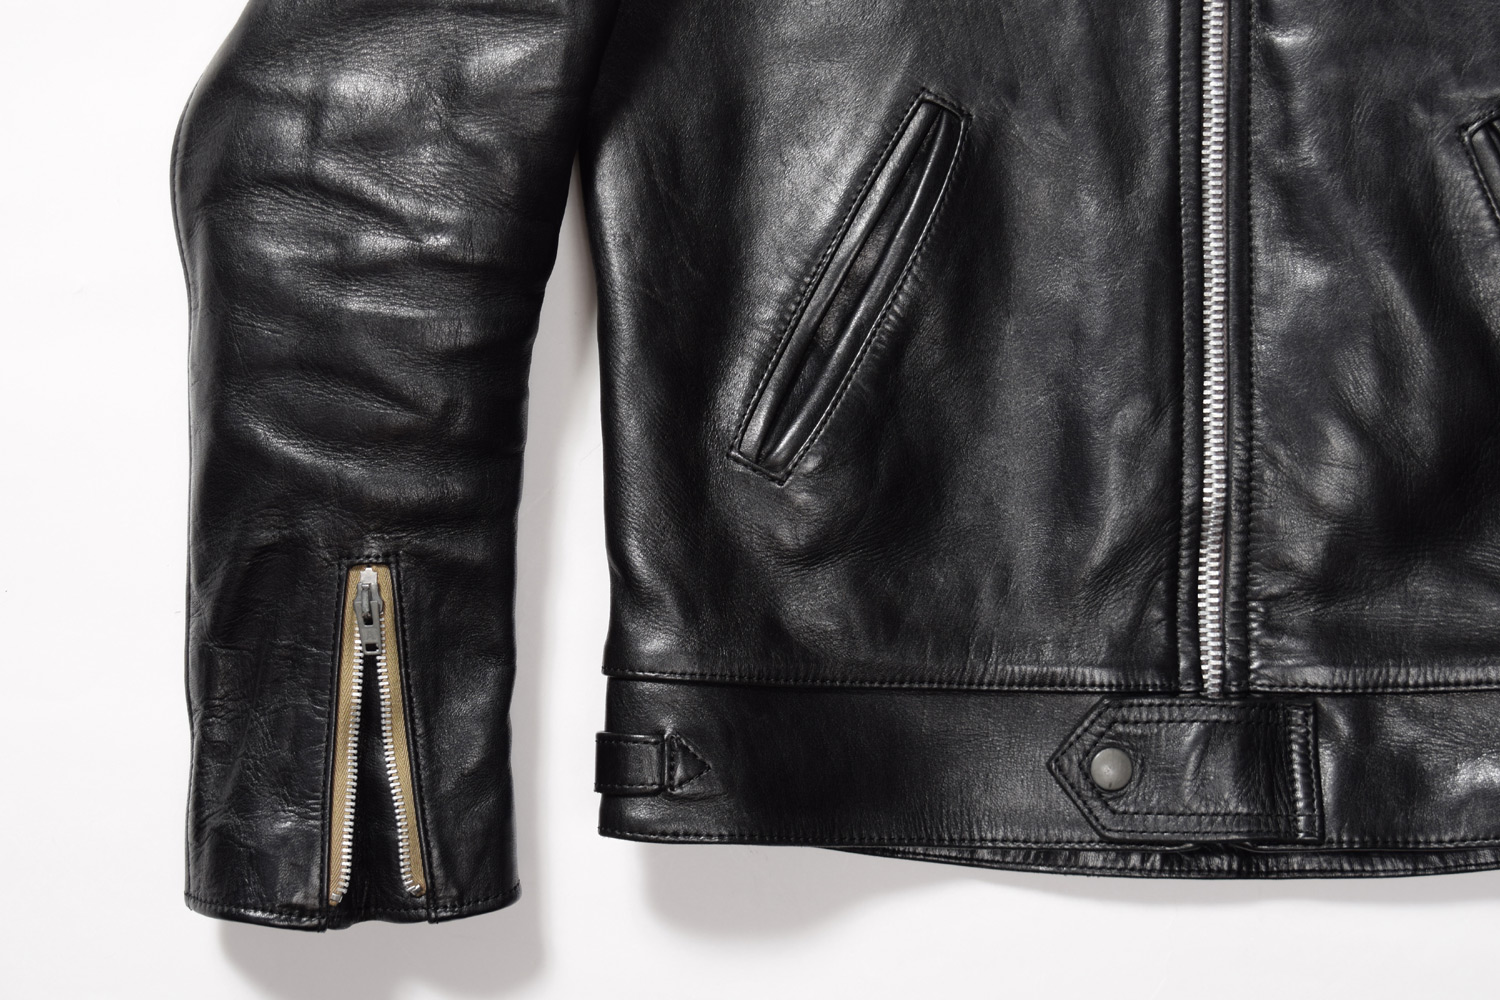 AGING of LEATHER JACKET